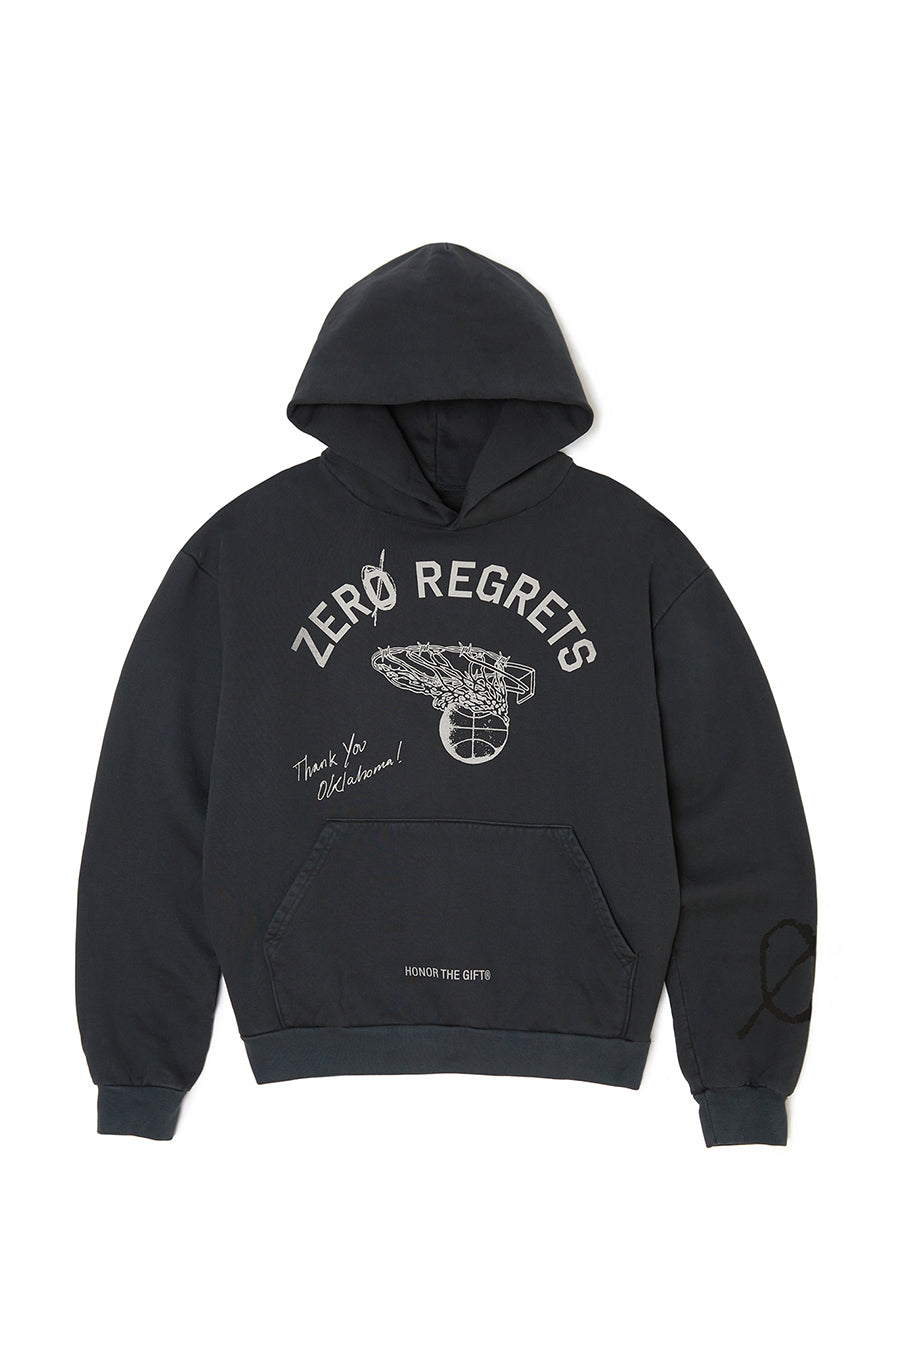 Honor the Gift - Black Zero Regrets Hoodie